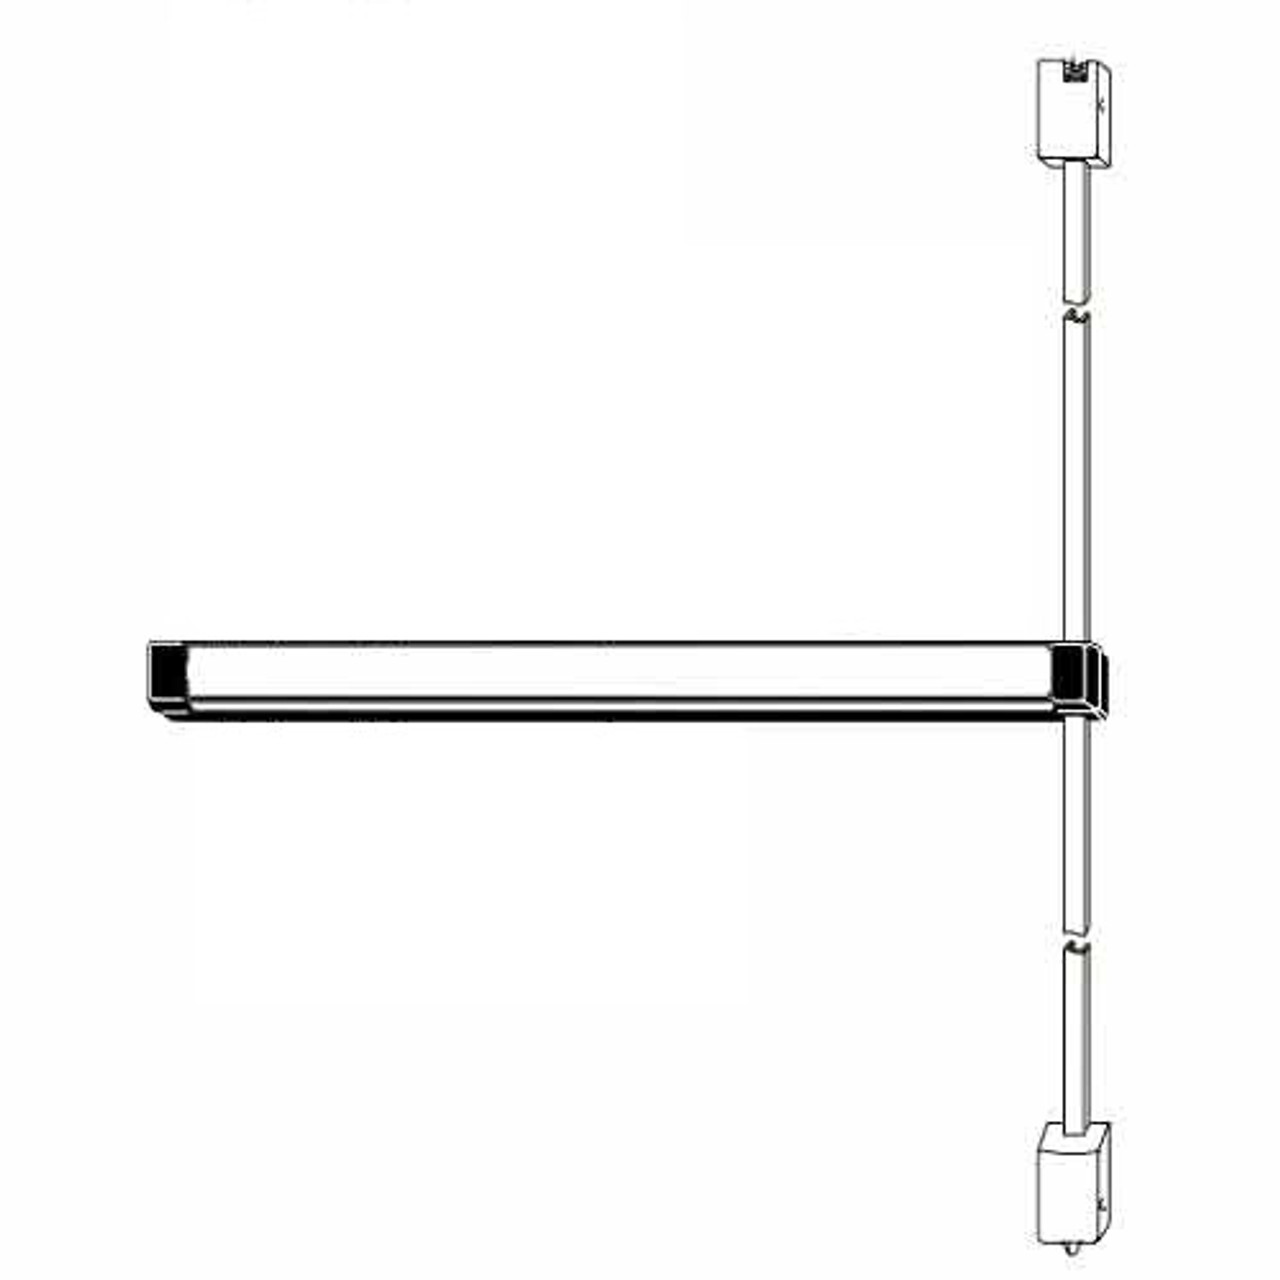 Adams Rite Surface Vertical Rod Exit Device for Wood and Hollow Metal Doors